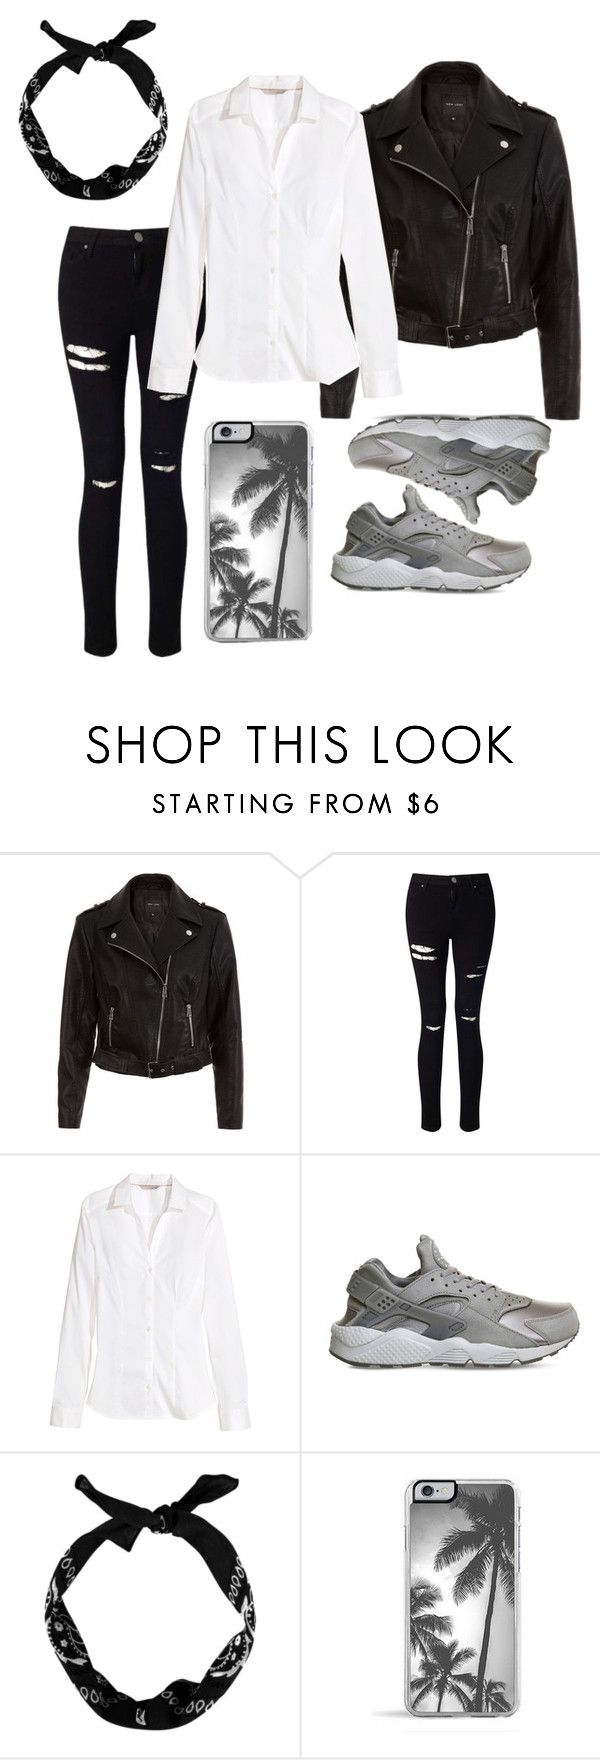 """Outfit for G-eazy concert"" by svdalen on Polyvore featuring mode, New Look, Miss Selfridge, H&M, NIKE en Zero Gravity"